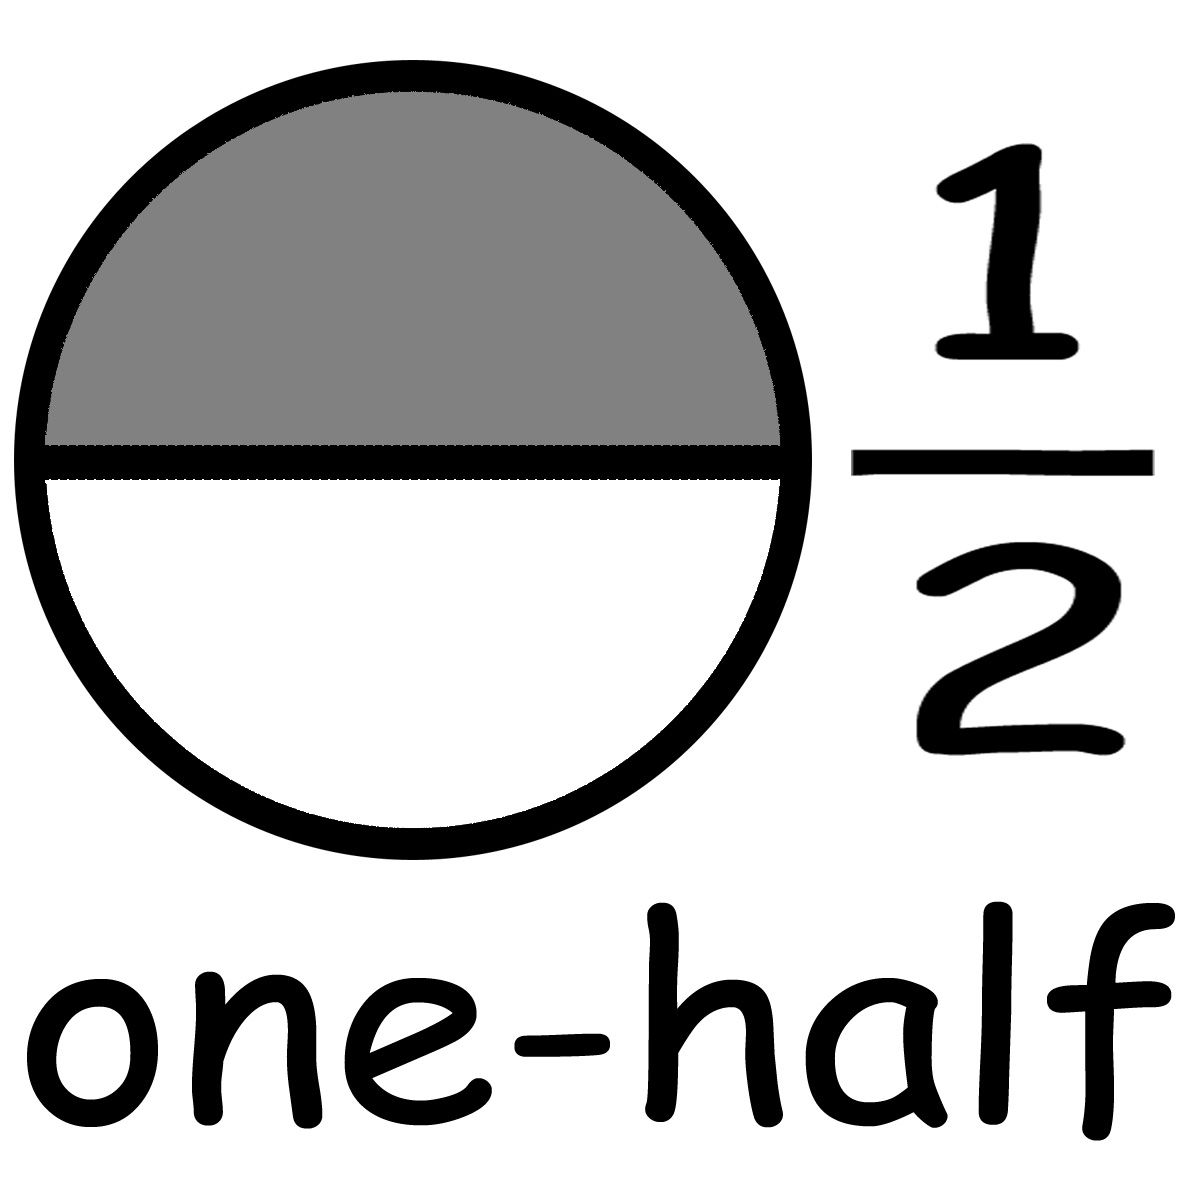 More or less than. Fraction clipart first quarter